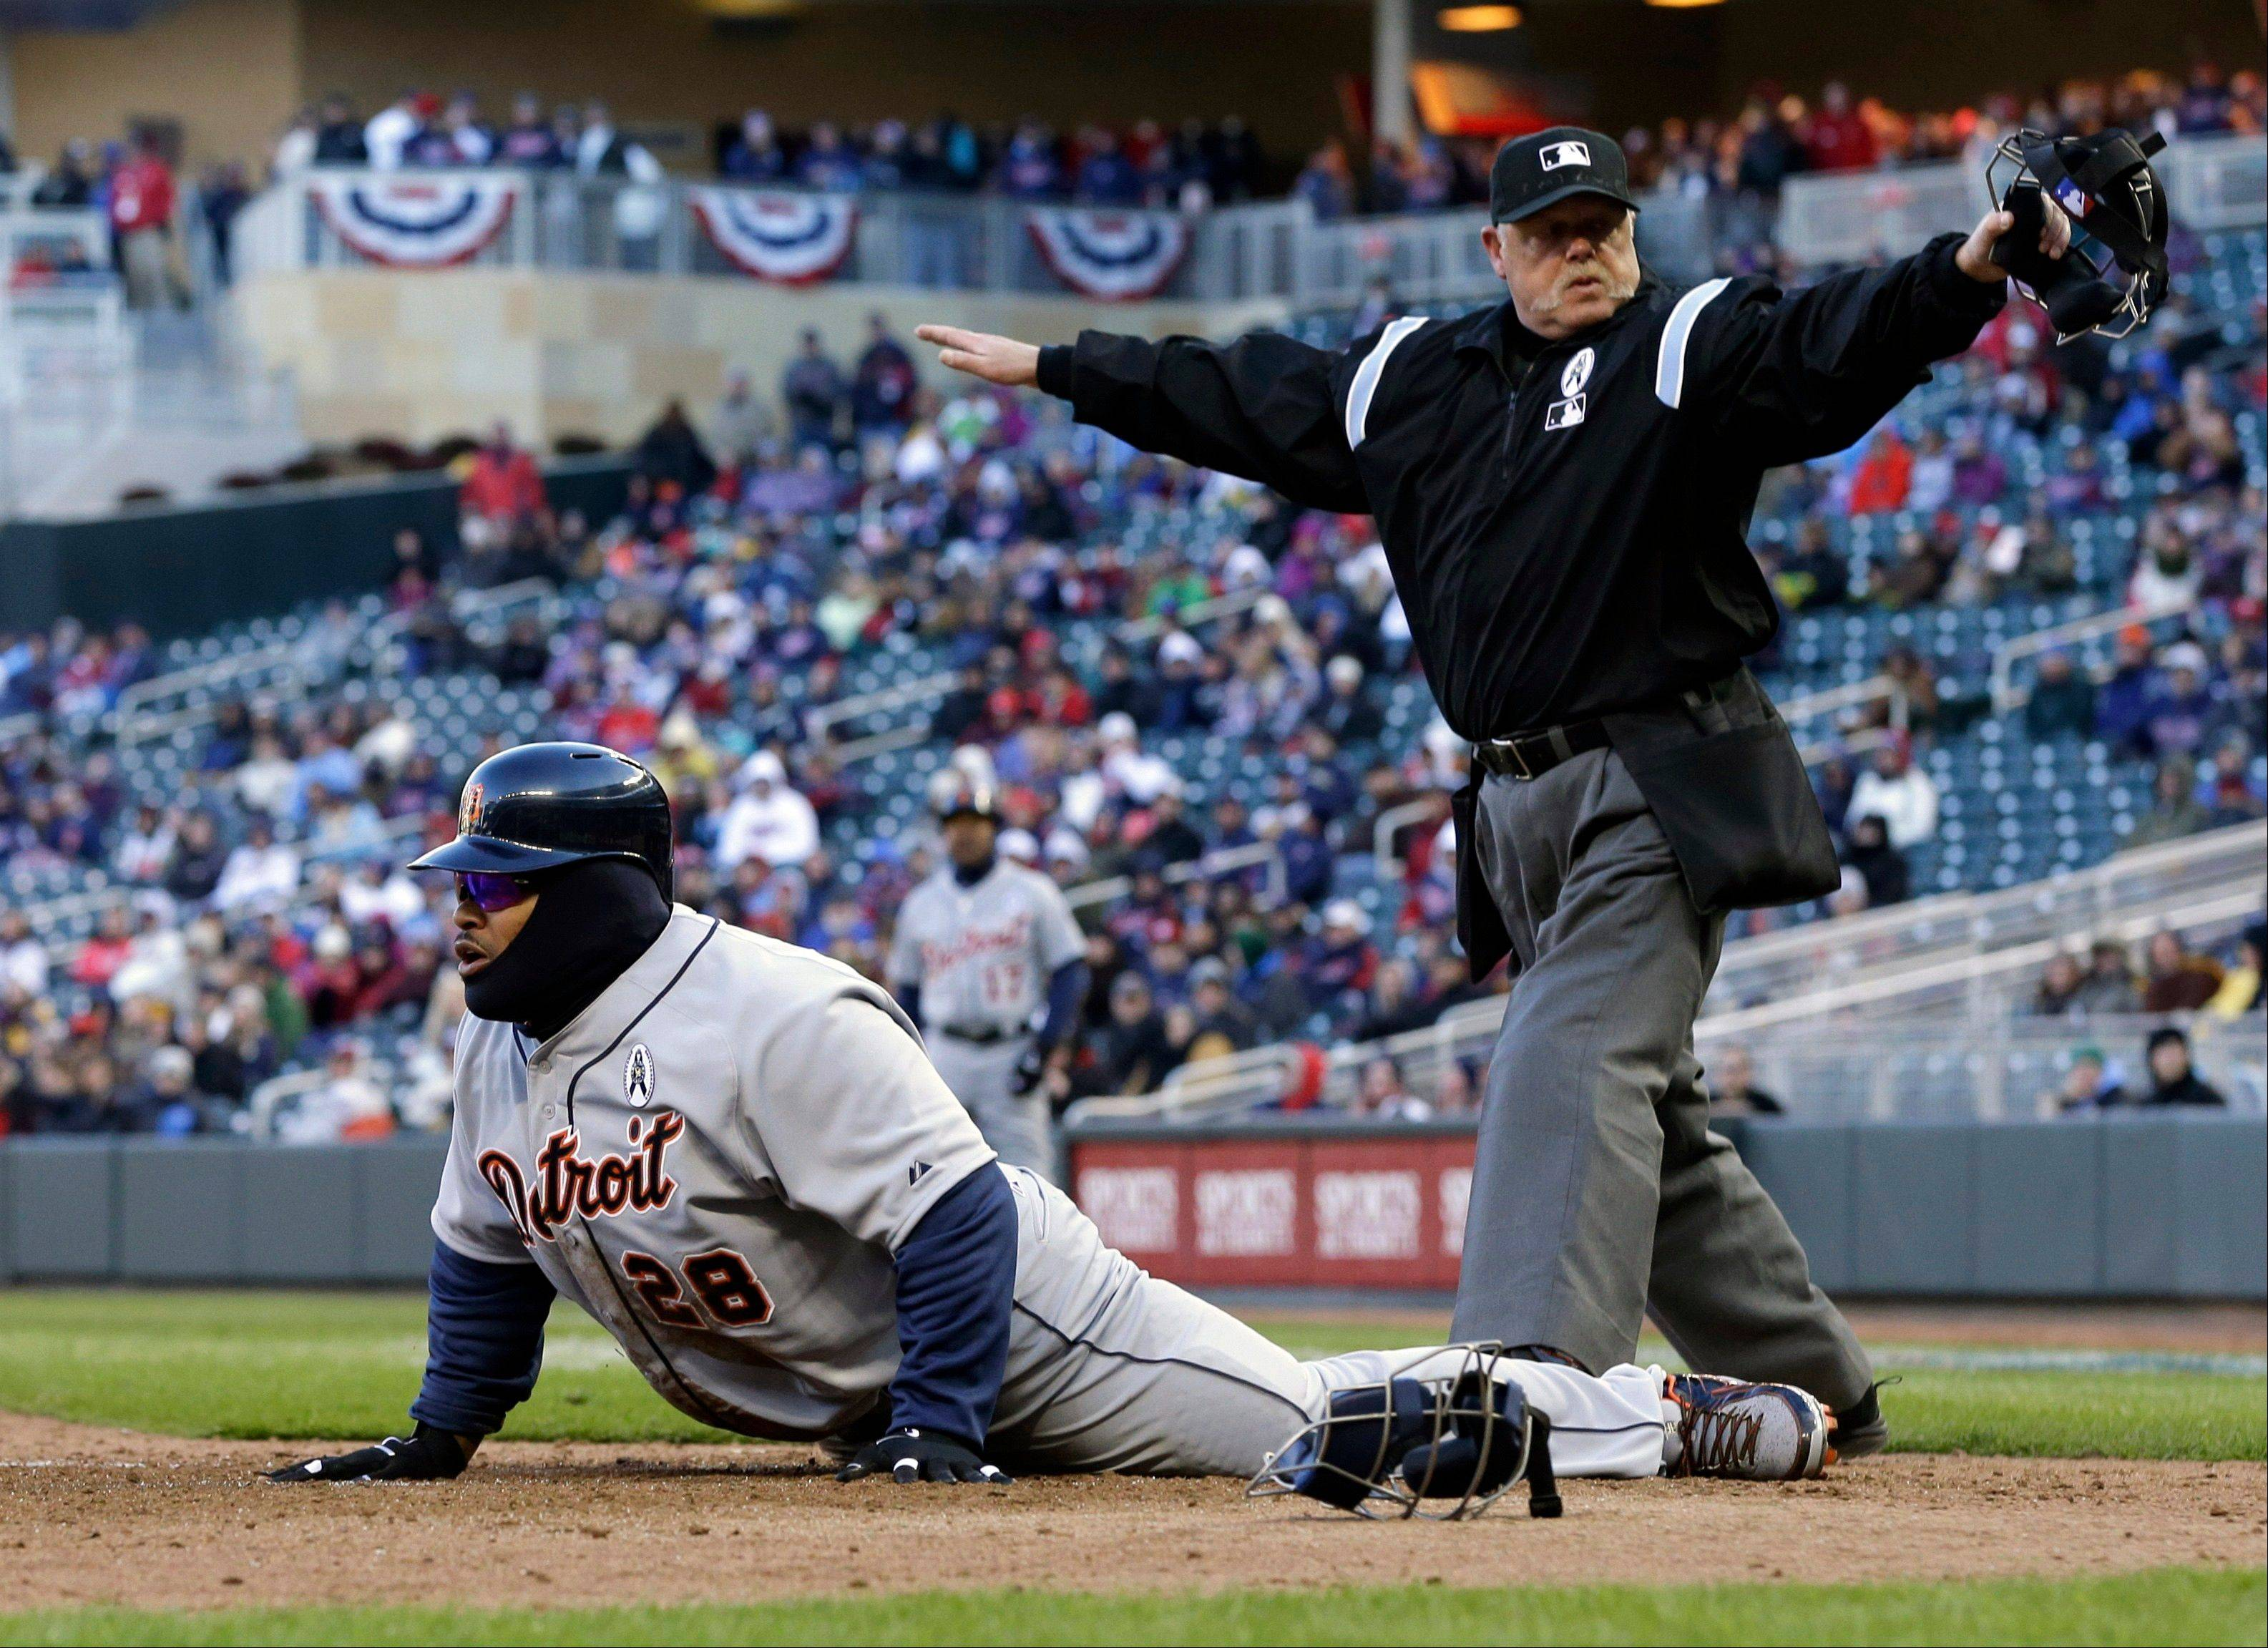 Plate umpire Jim Joyce signals Detroit Tigers' Prince Fielder safe as he scores on a wild pitch by Minnesota Twins pitcher Josh Roenicke in the eighth inning Monday.